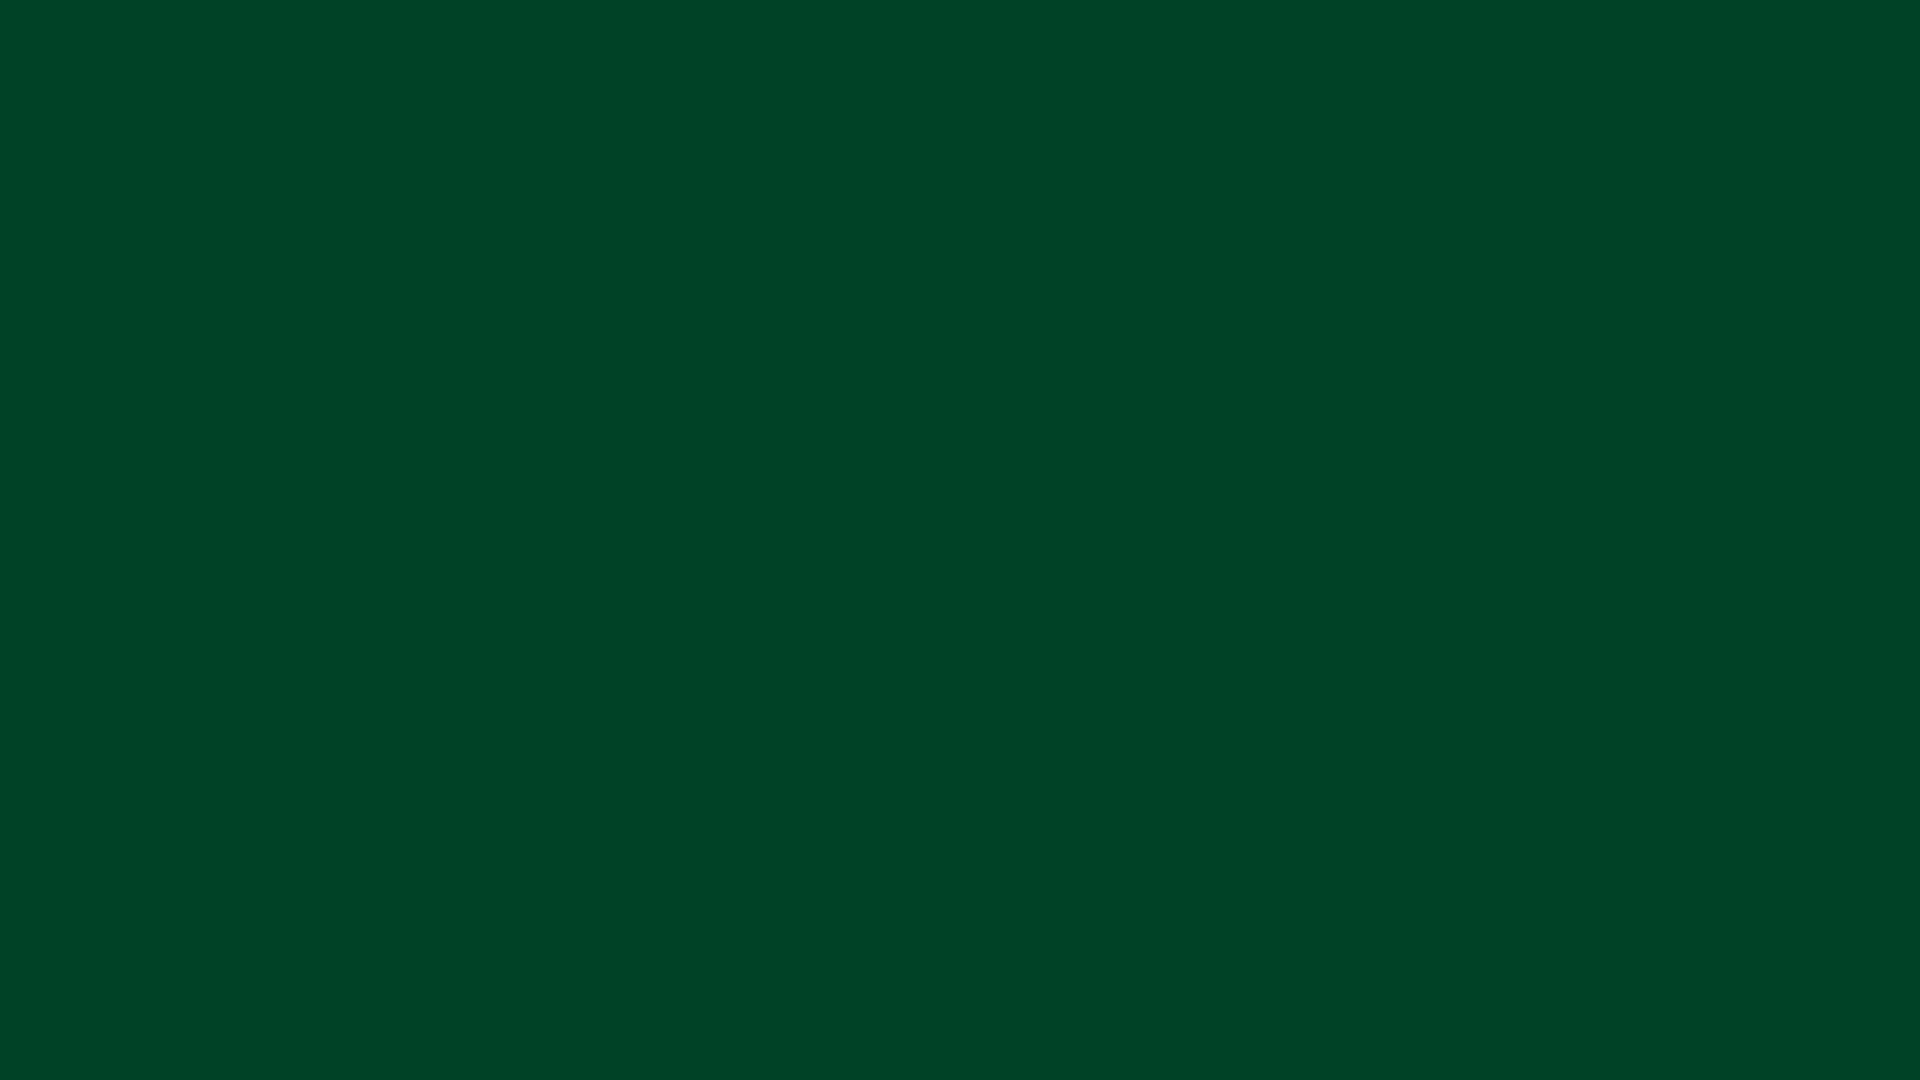 1920x1080 british racing green solid color background